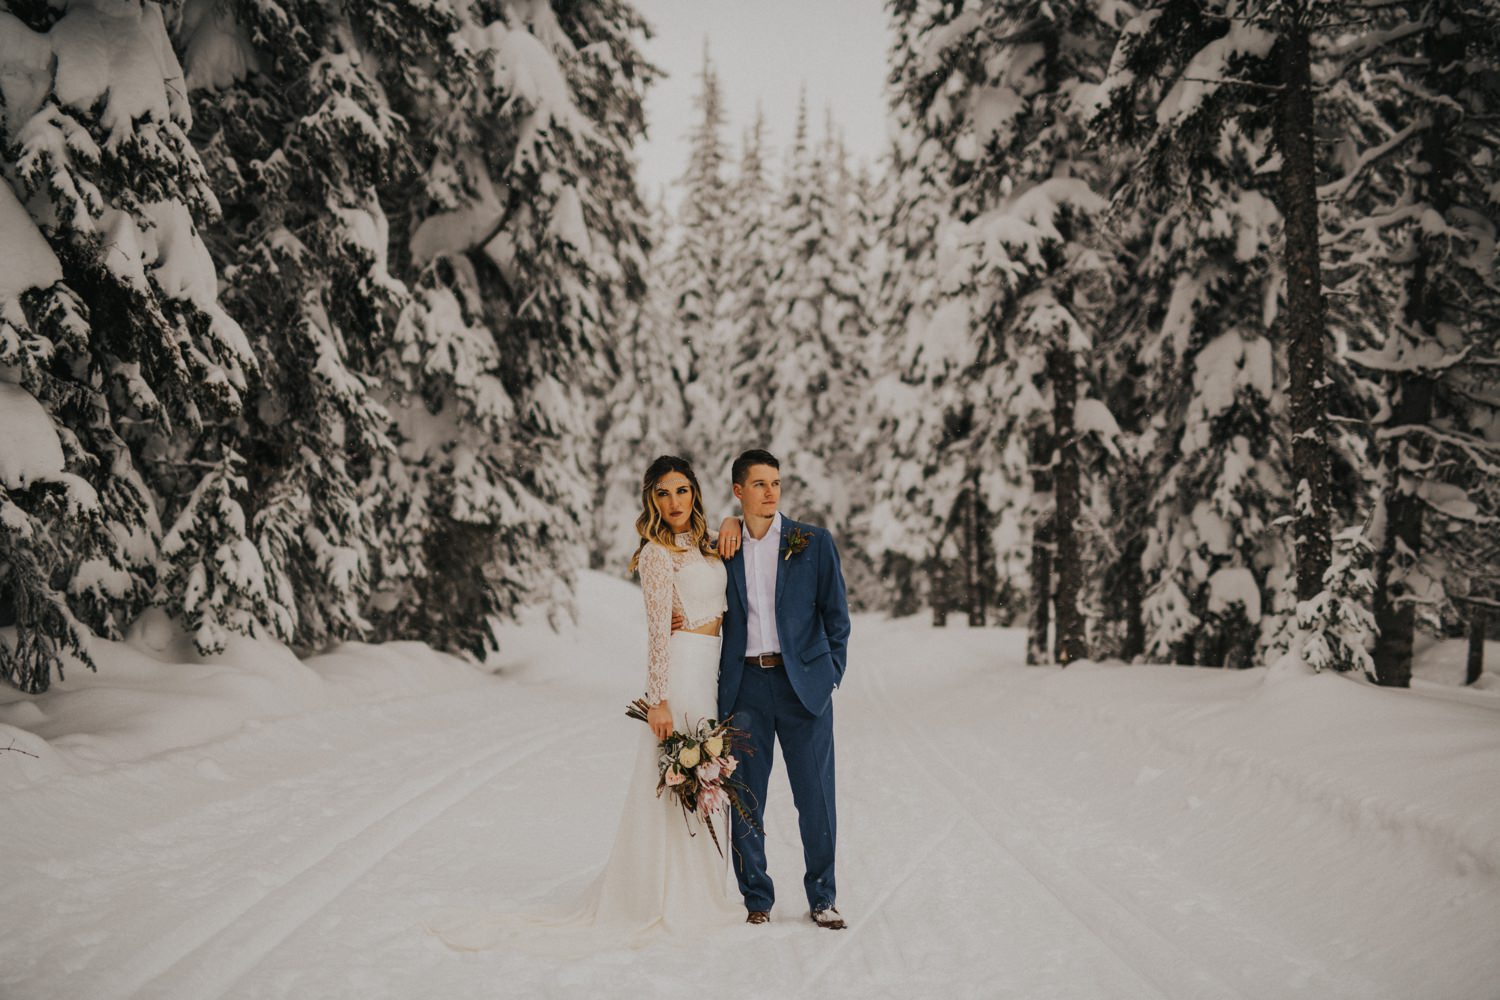 Okanagan Winter Elopement - Joelsview Photography_0013